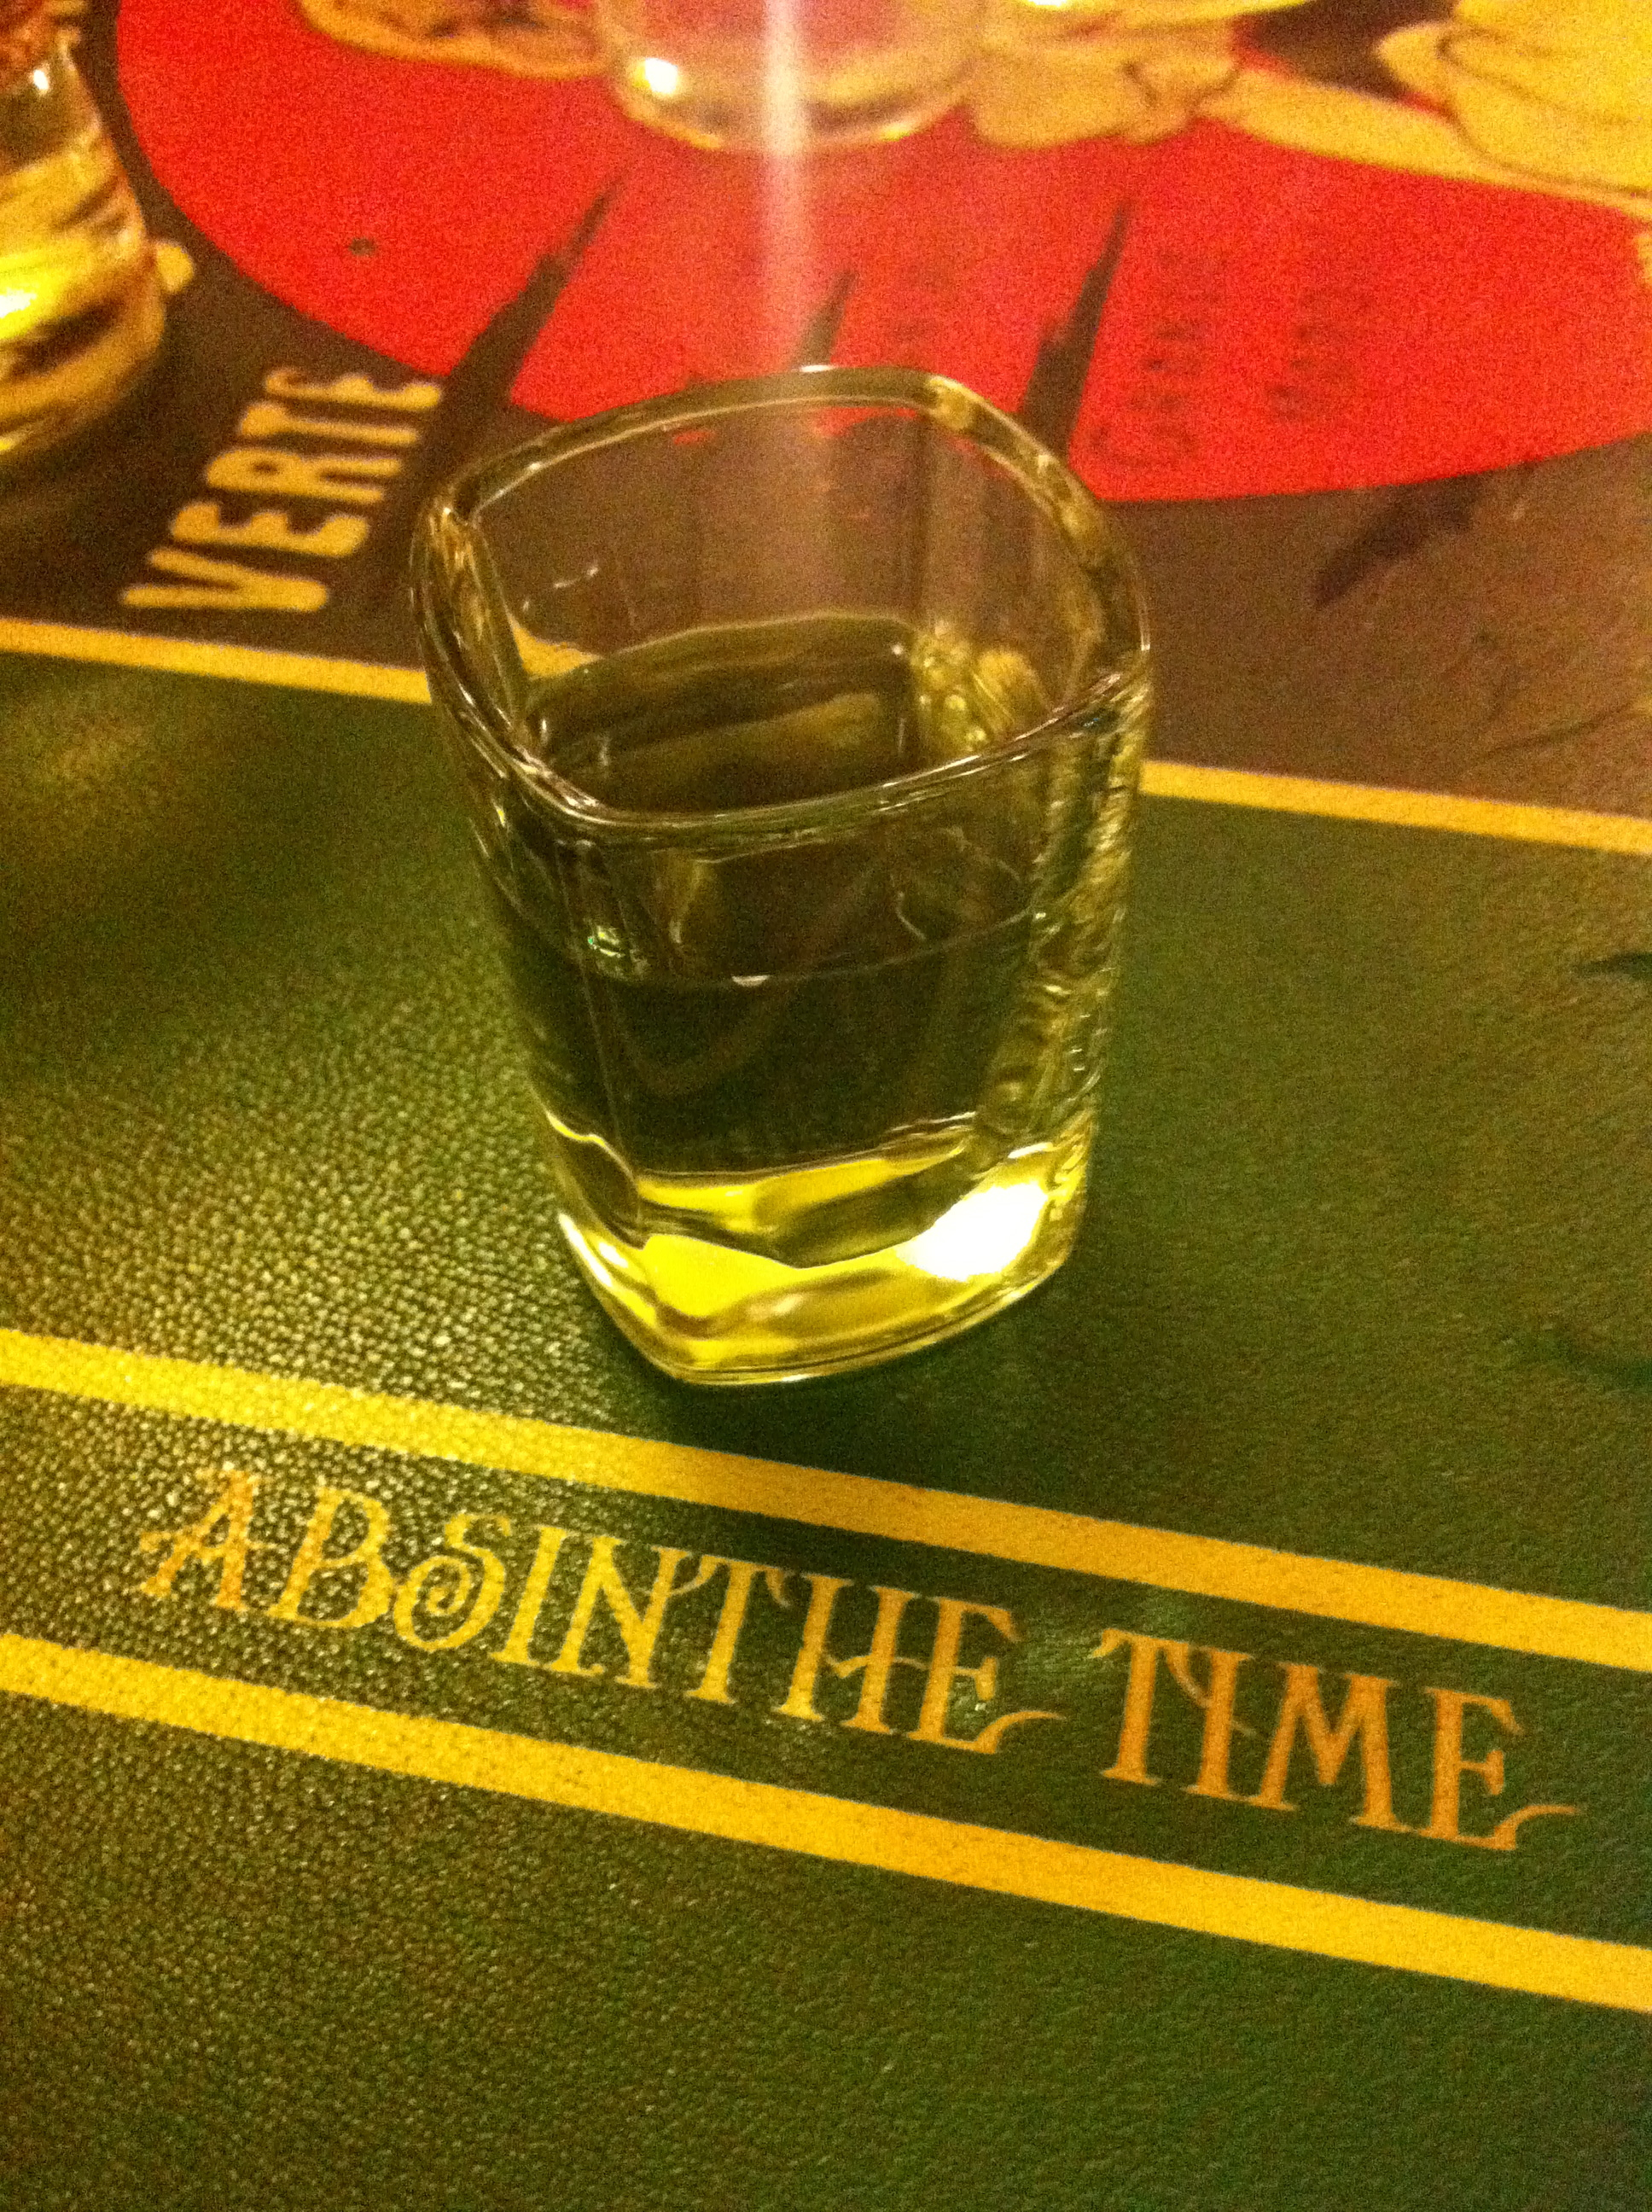 Absinthe Time, Prague